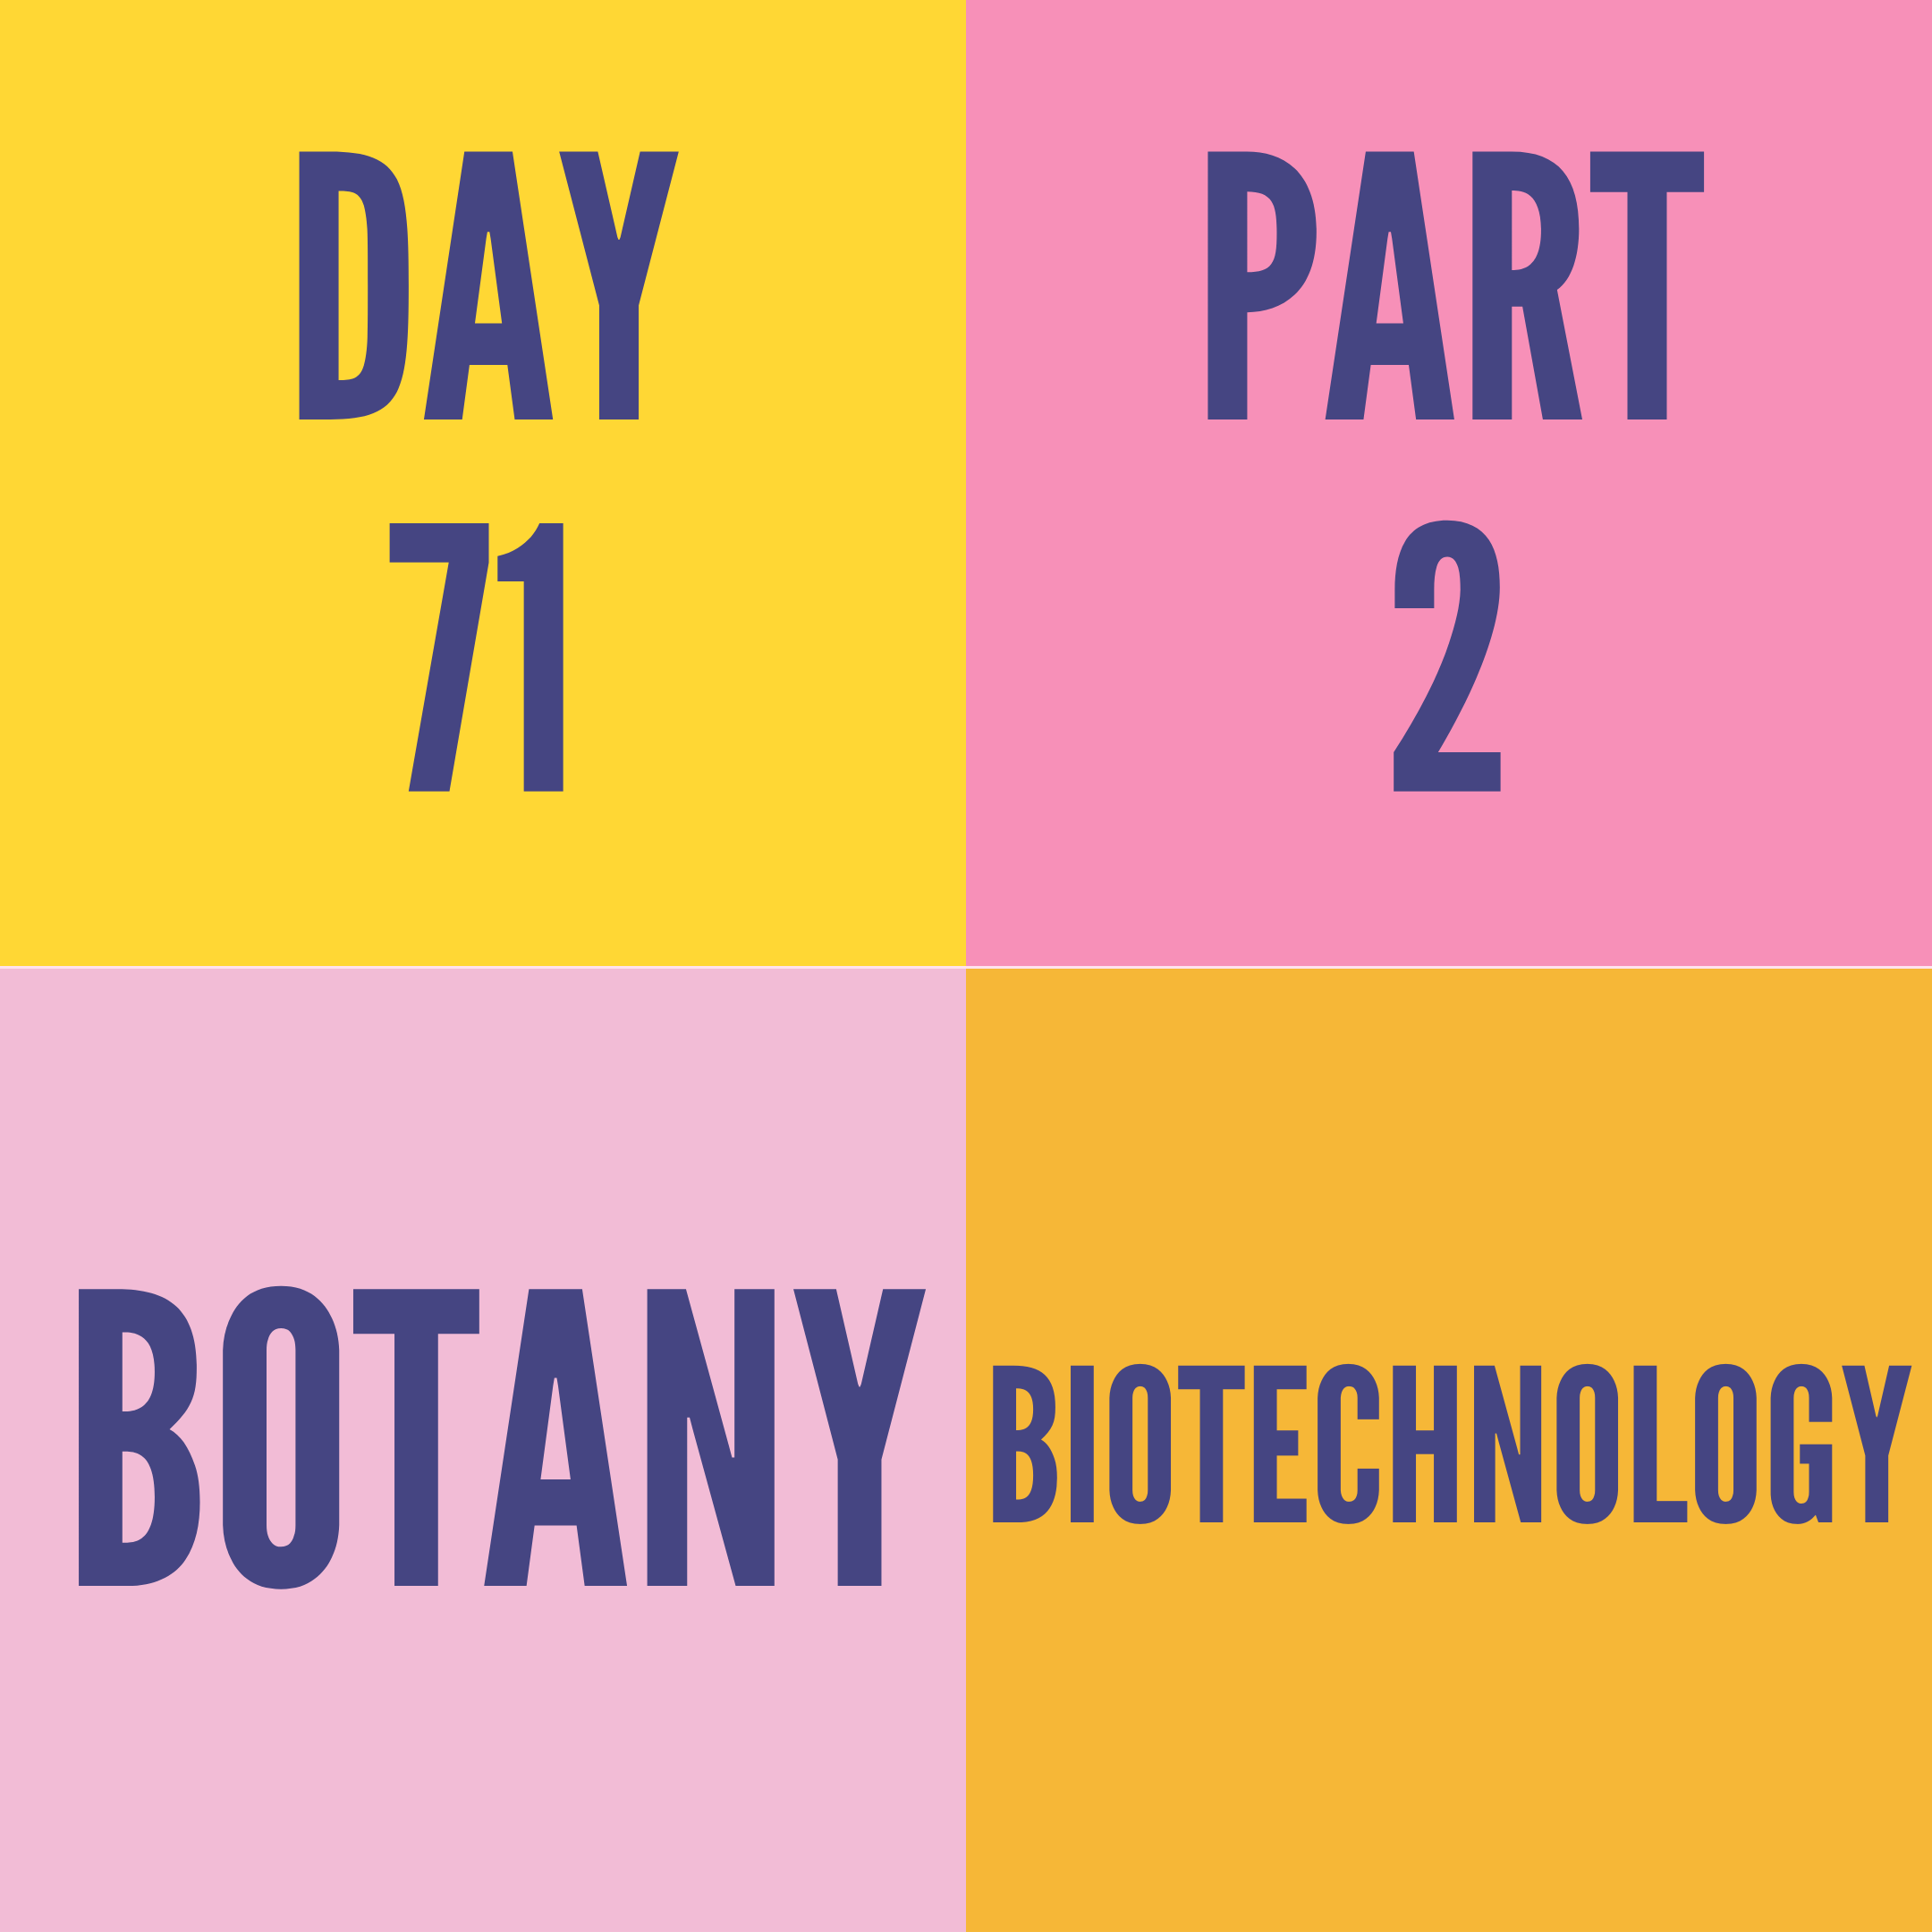 DAY-71 PART-2 BIOTECHNOLOGY